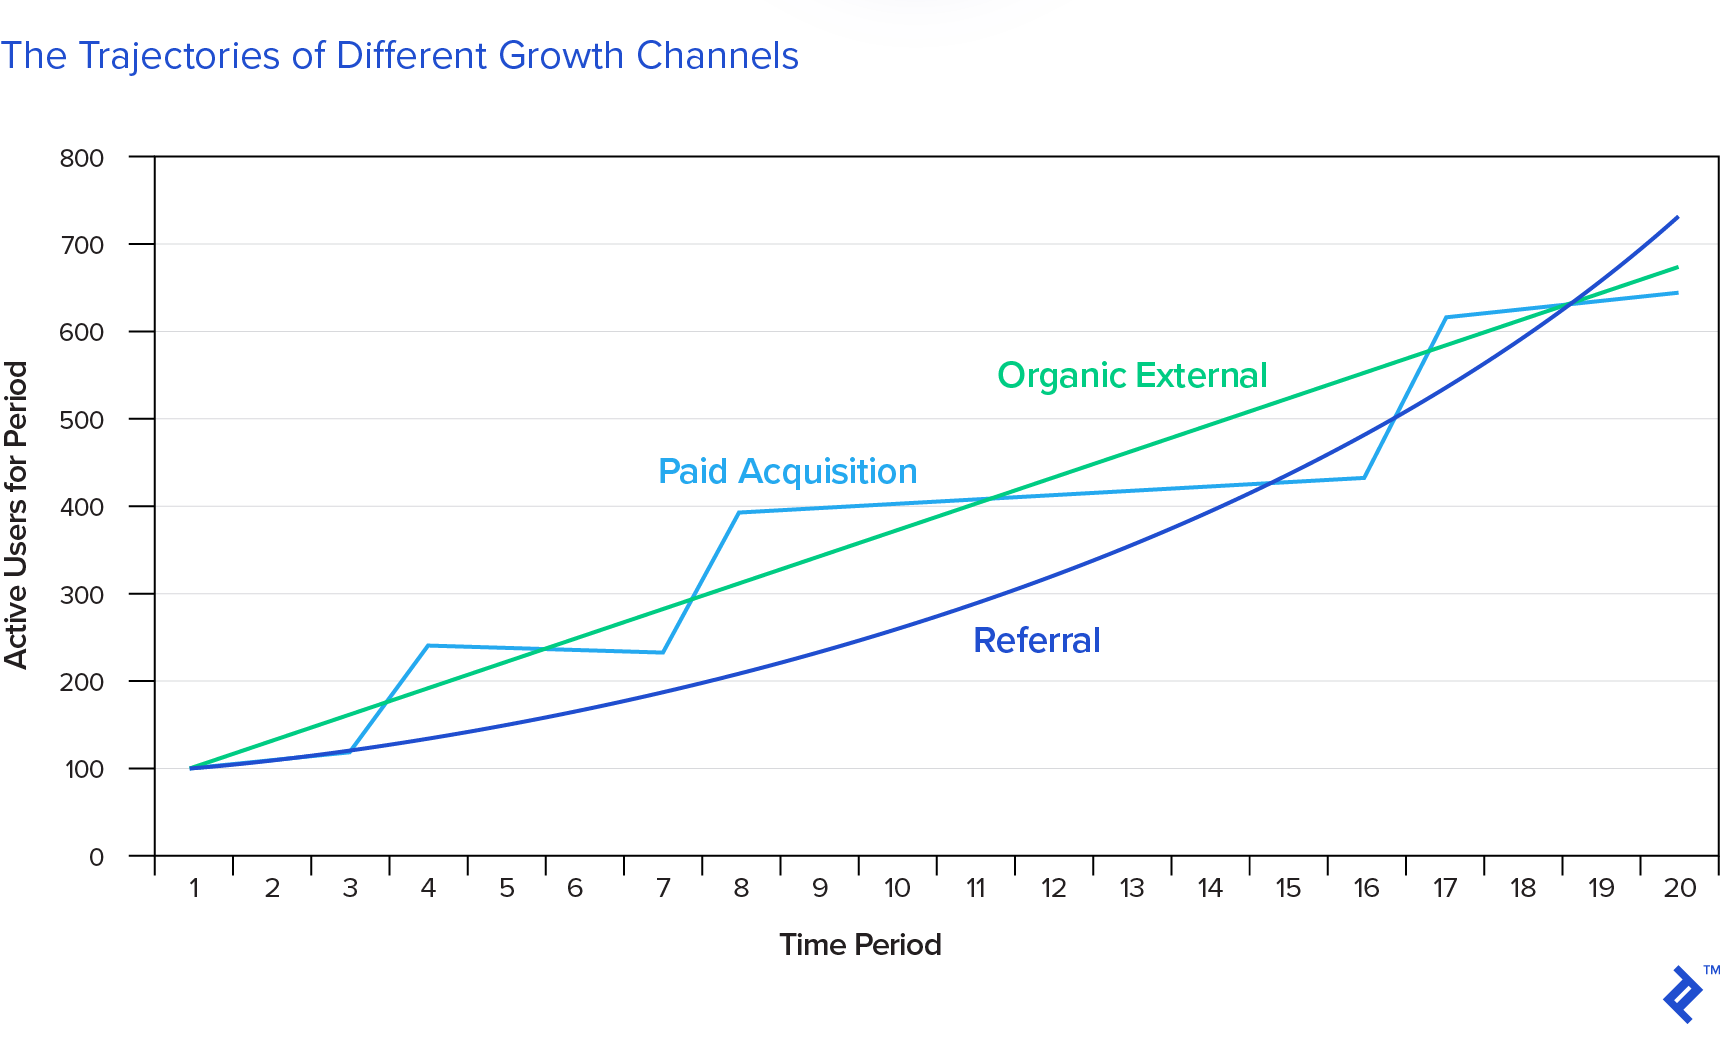 The trajectories of different growth channels